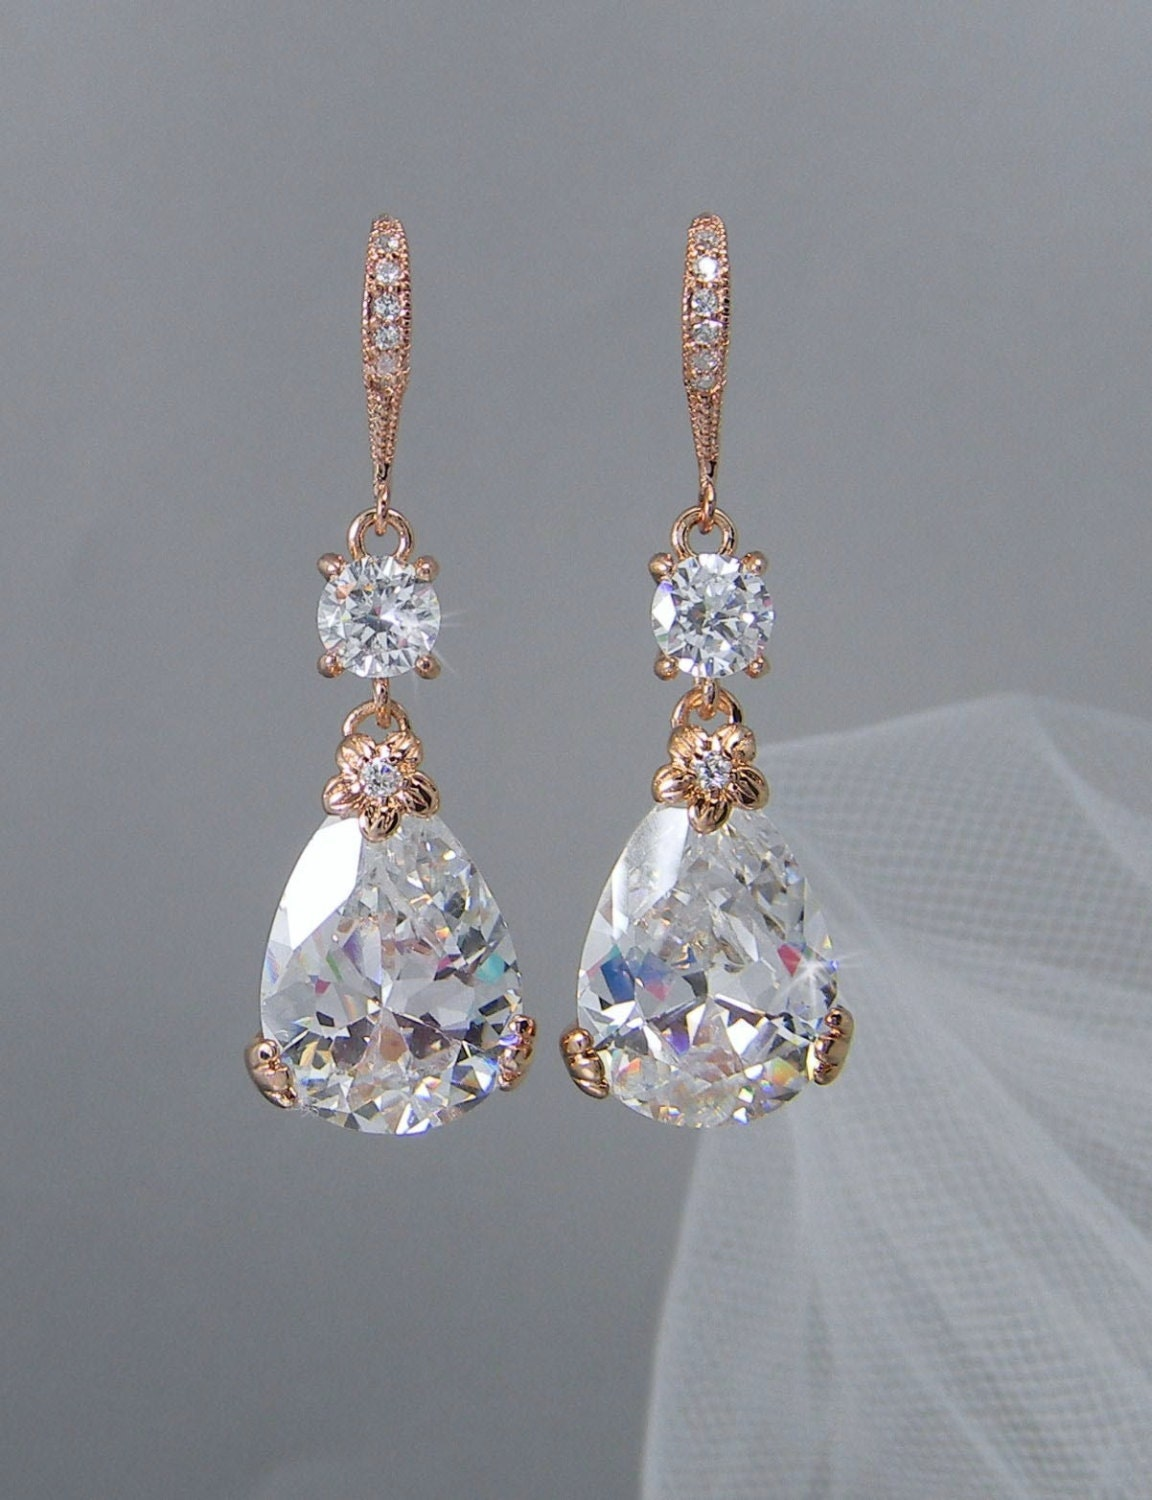 Rose Gold Bridal Earrings Drop Wedding Earrings Swarovski